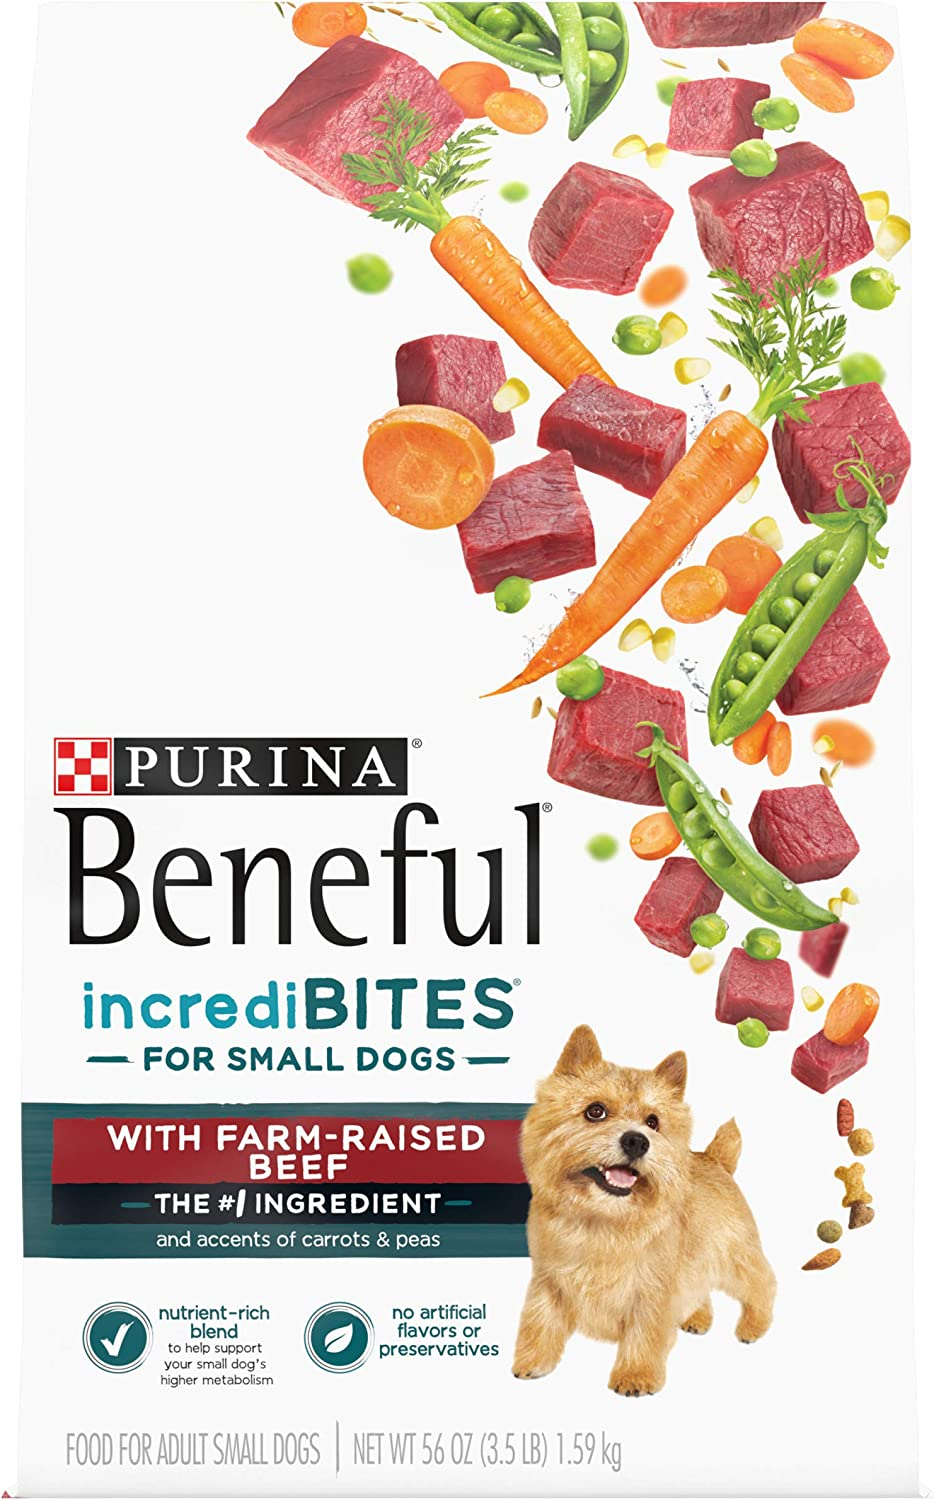 Purina Beneful Incredibites with Farm-Raised Beef, Small Breed Dry Dog Food - (4) 3.5 lb. Bags